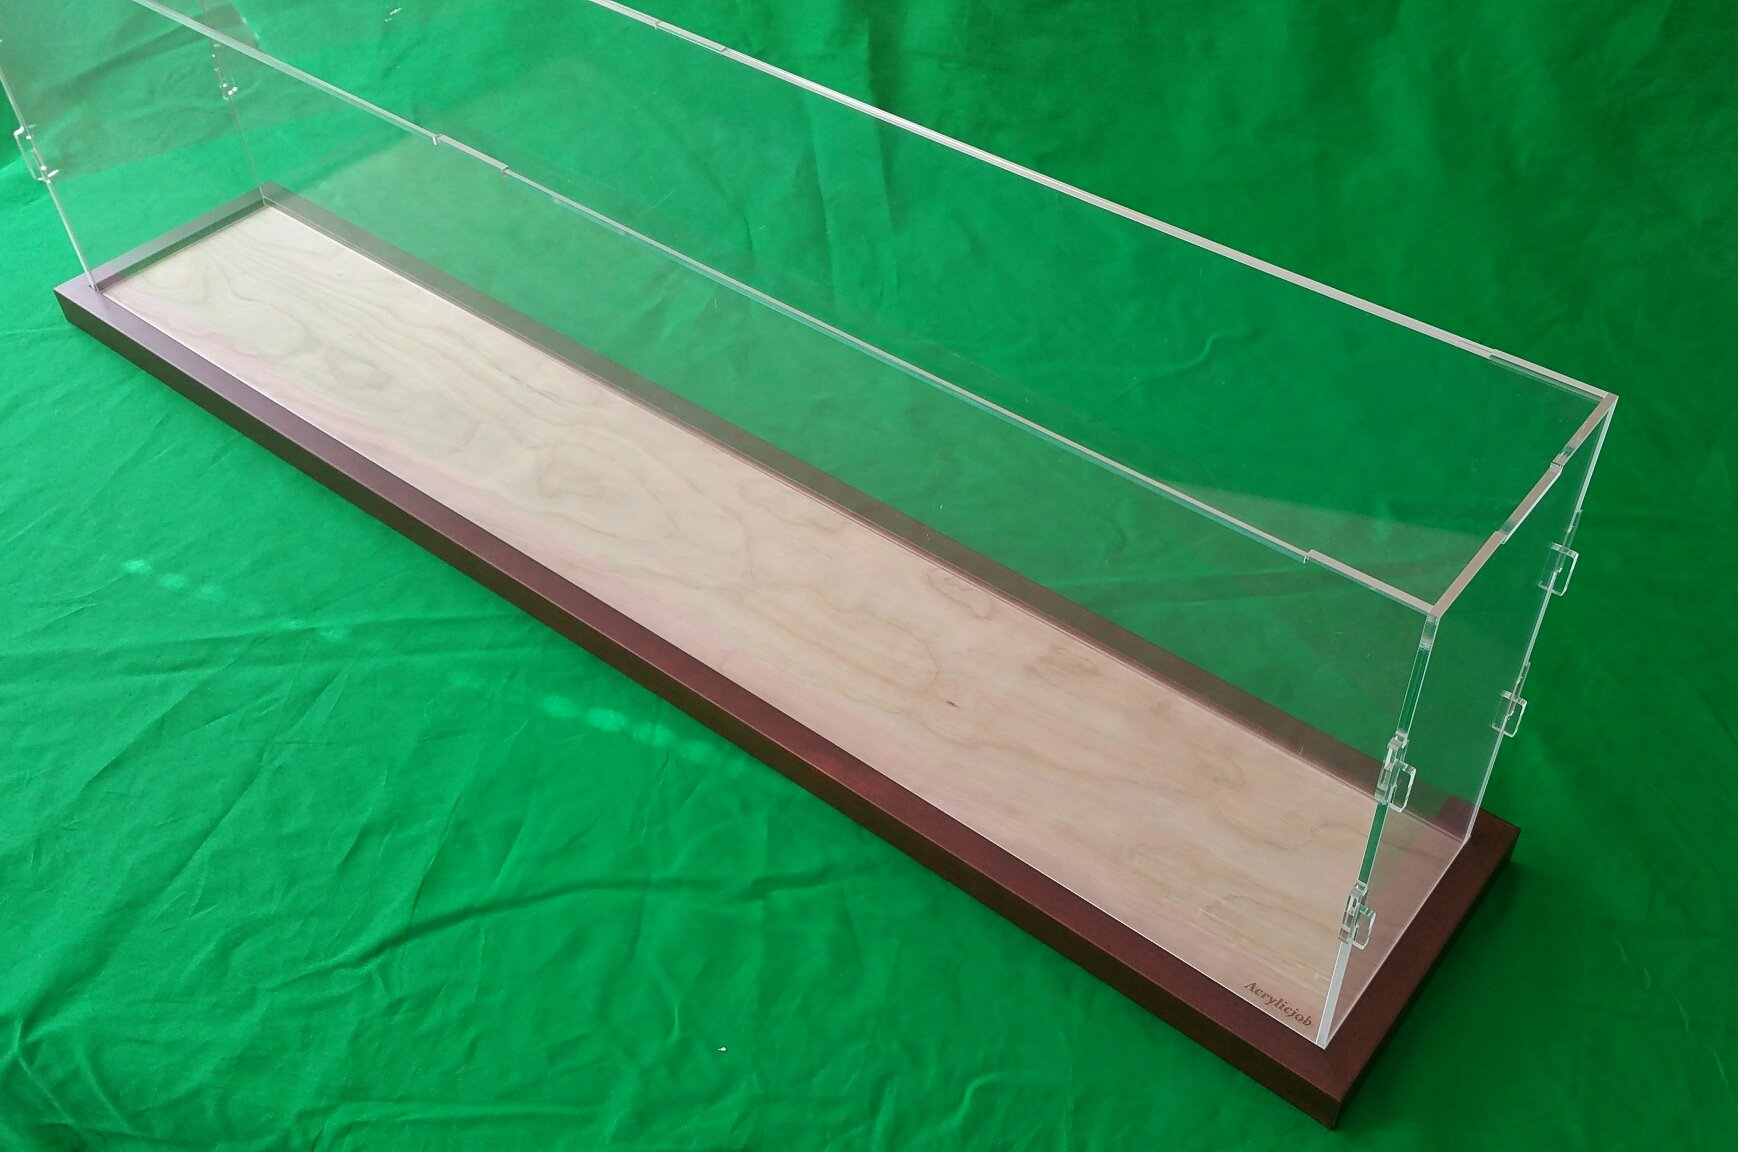 27 X 5 X 10 Clear Acrylic Plastic Display Box Case for 1/32 Scale Trucks Ocean Liner Cruise Ships LGB and G Scale Train by Acrylicjob